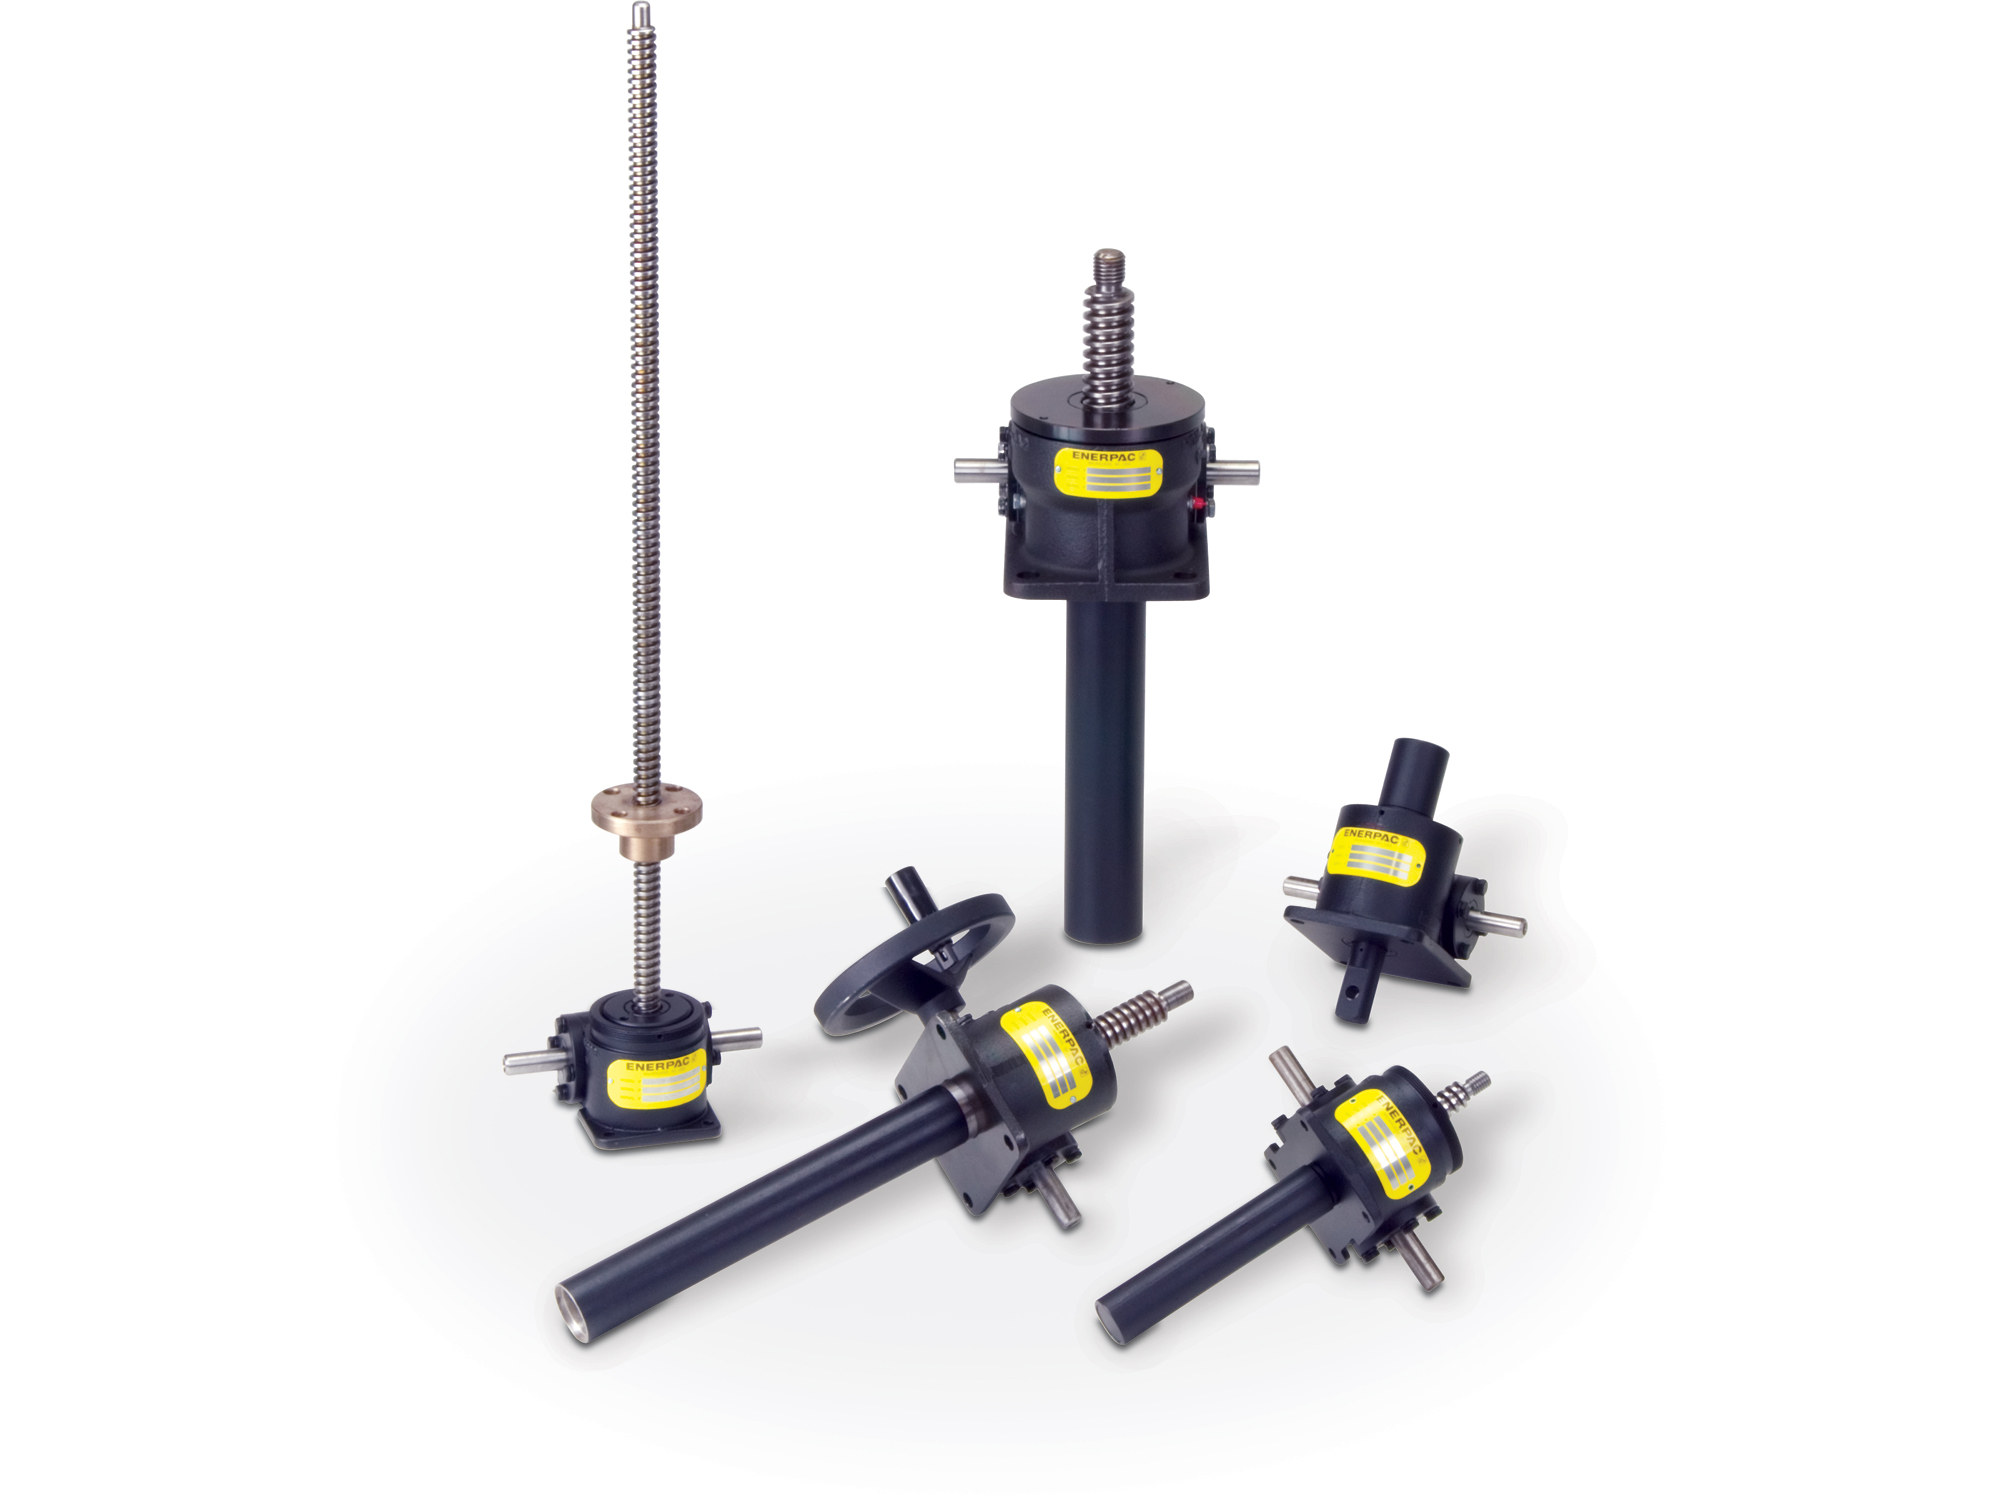 Enerpac Mechanical Actuators